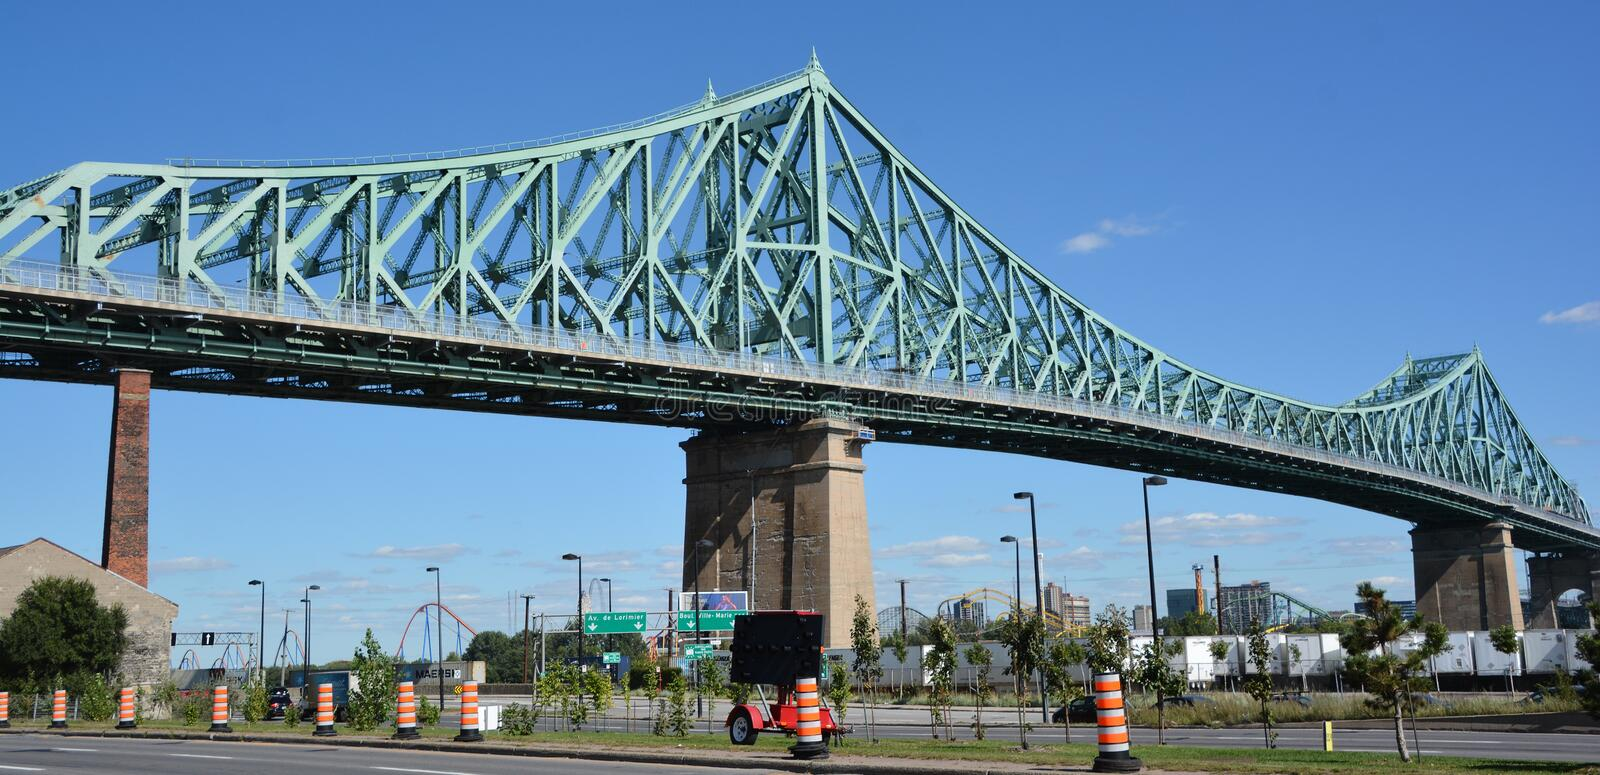 The Jacques Cartier Bridge. MONTREAL CANADA 09 17 2016:The Jacques Cartier Bridge is a steel truss cantilever bridge crossing the Saint Lawrence River from stock photos